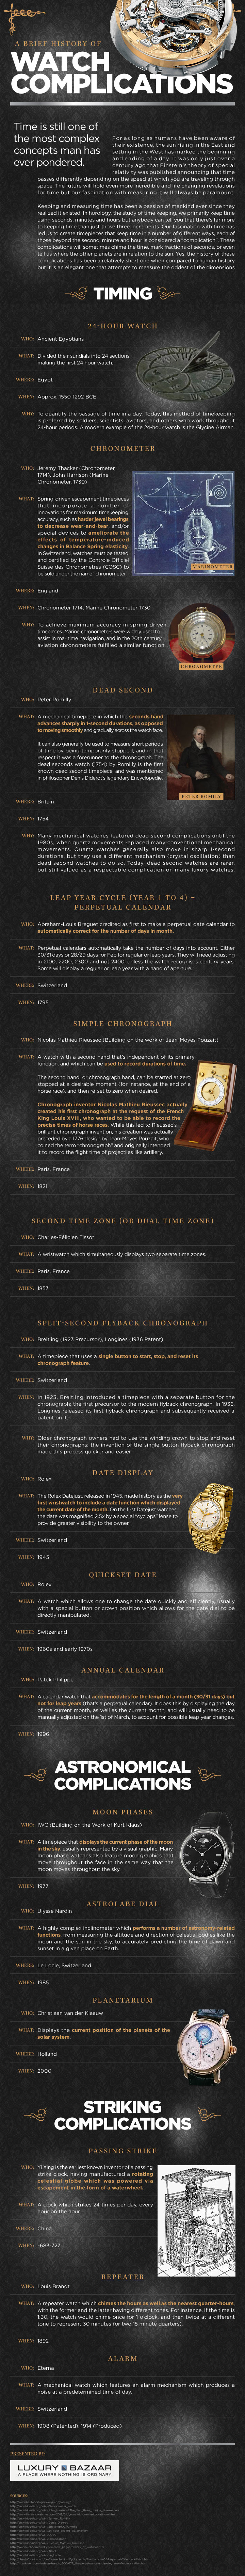 Horology History-Infographic